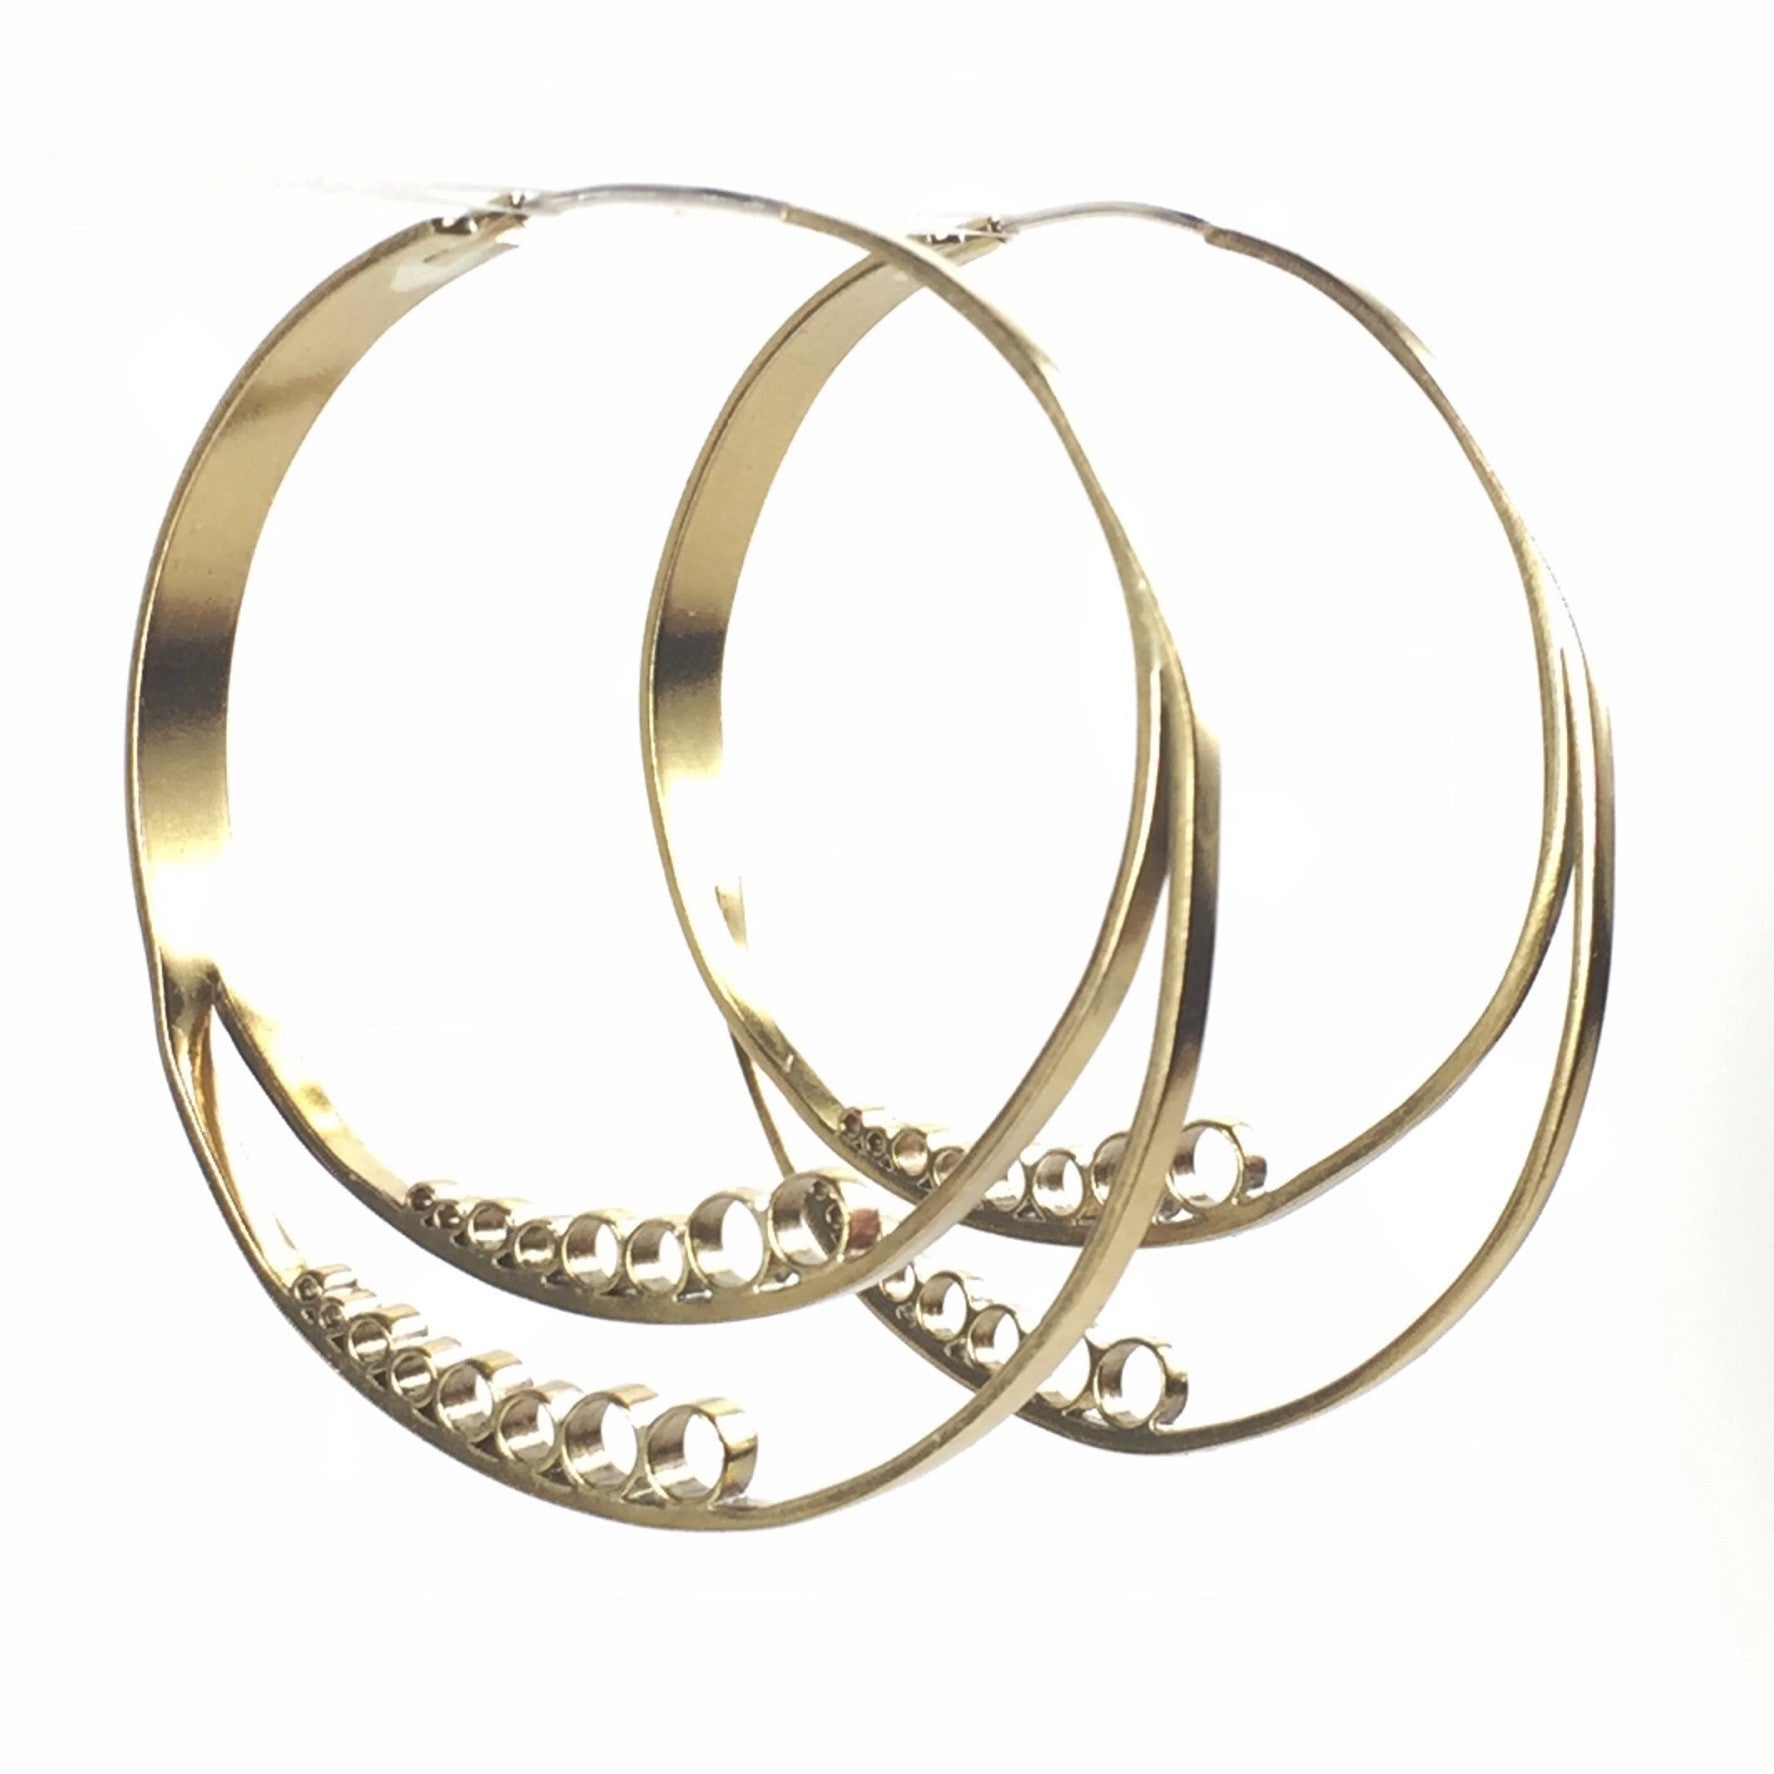 CENTRIFUGAL BRASS MINIMAL HOOPS